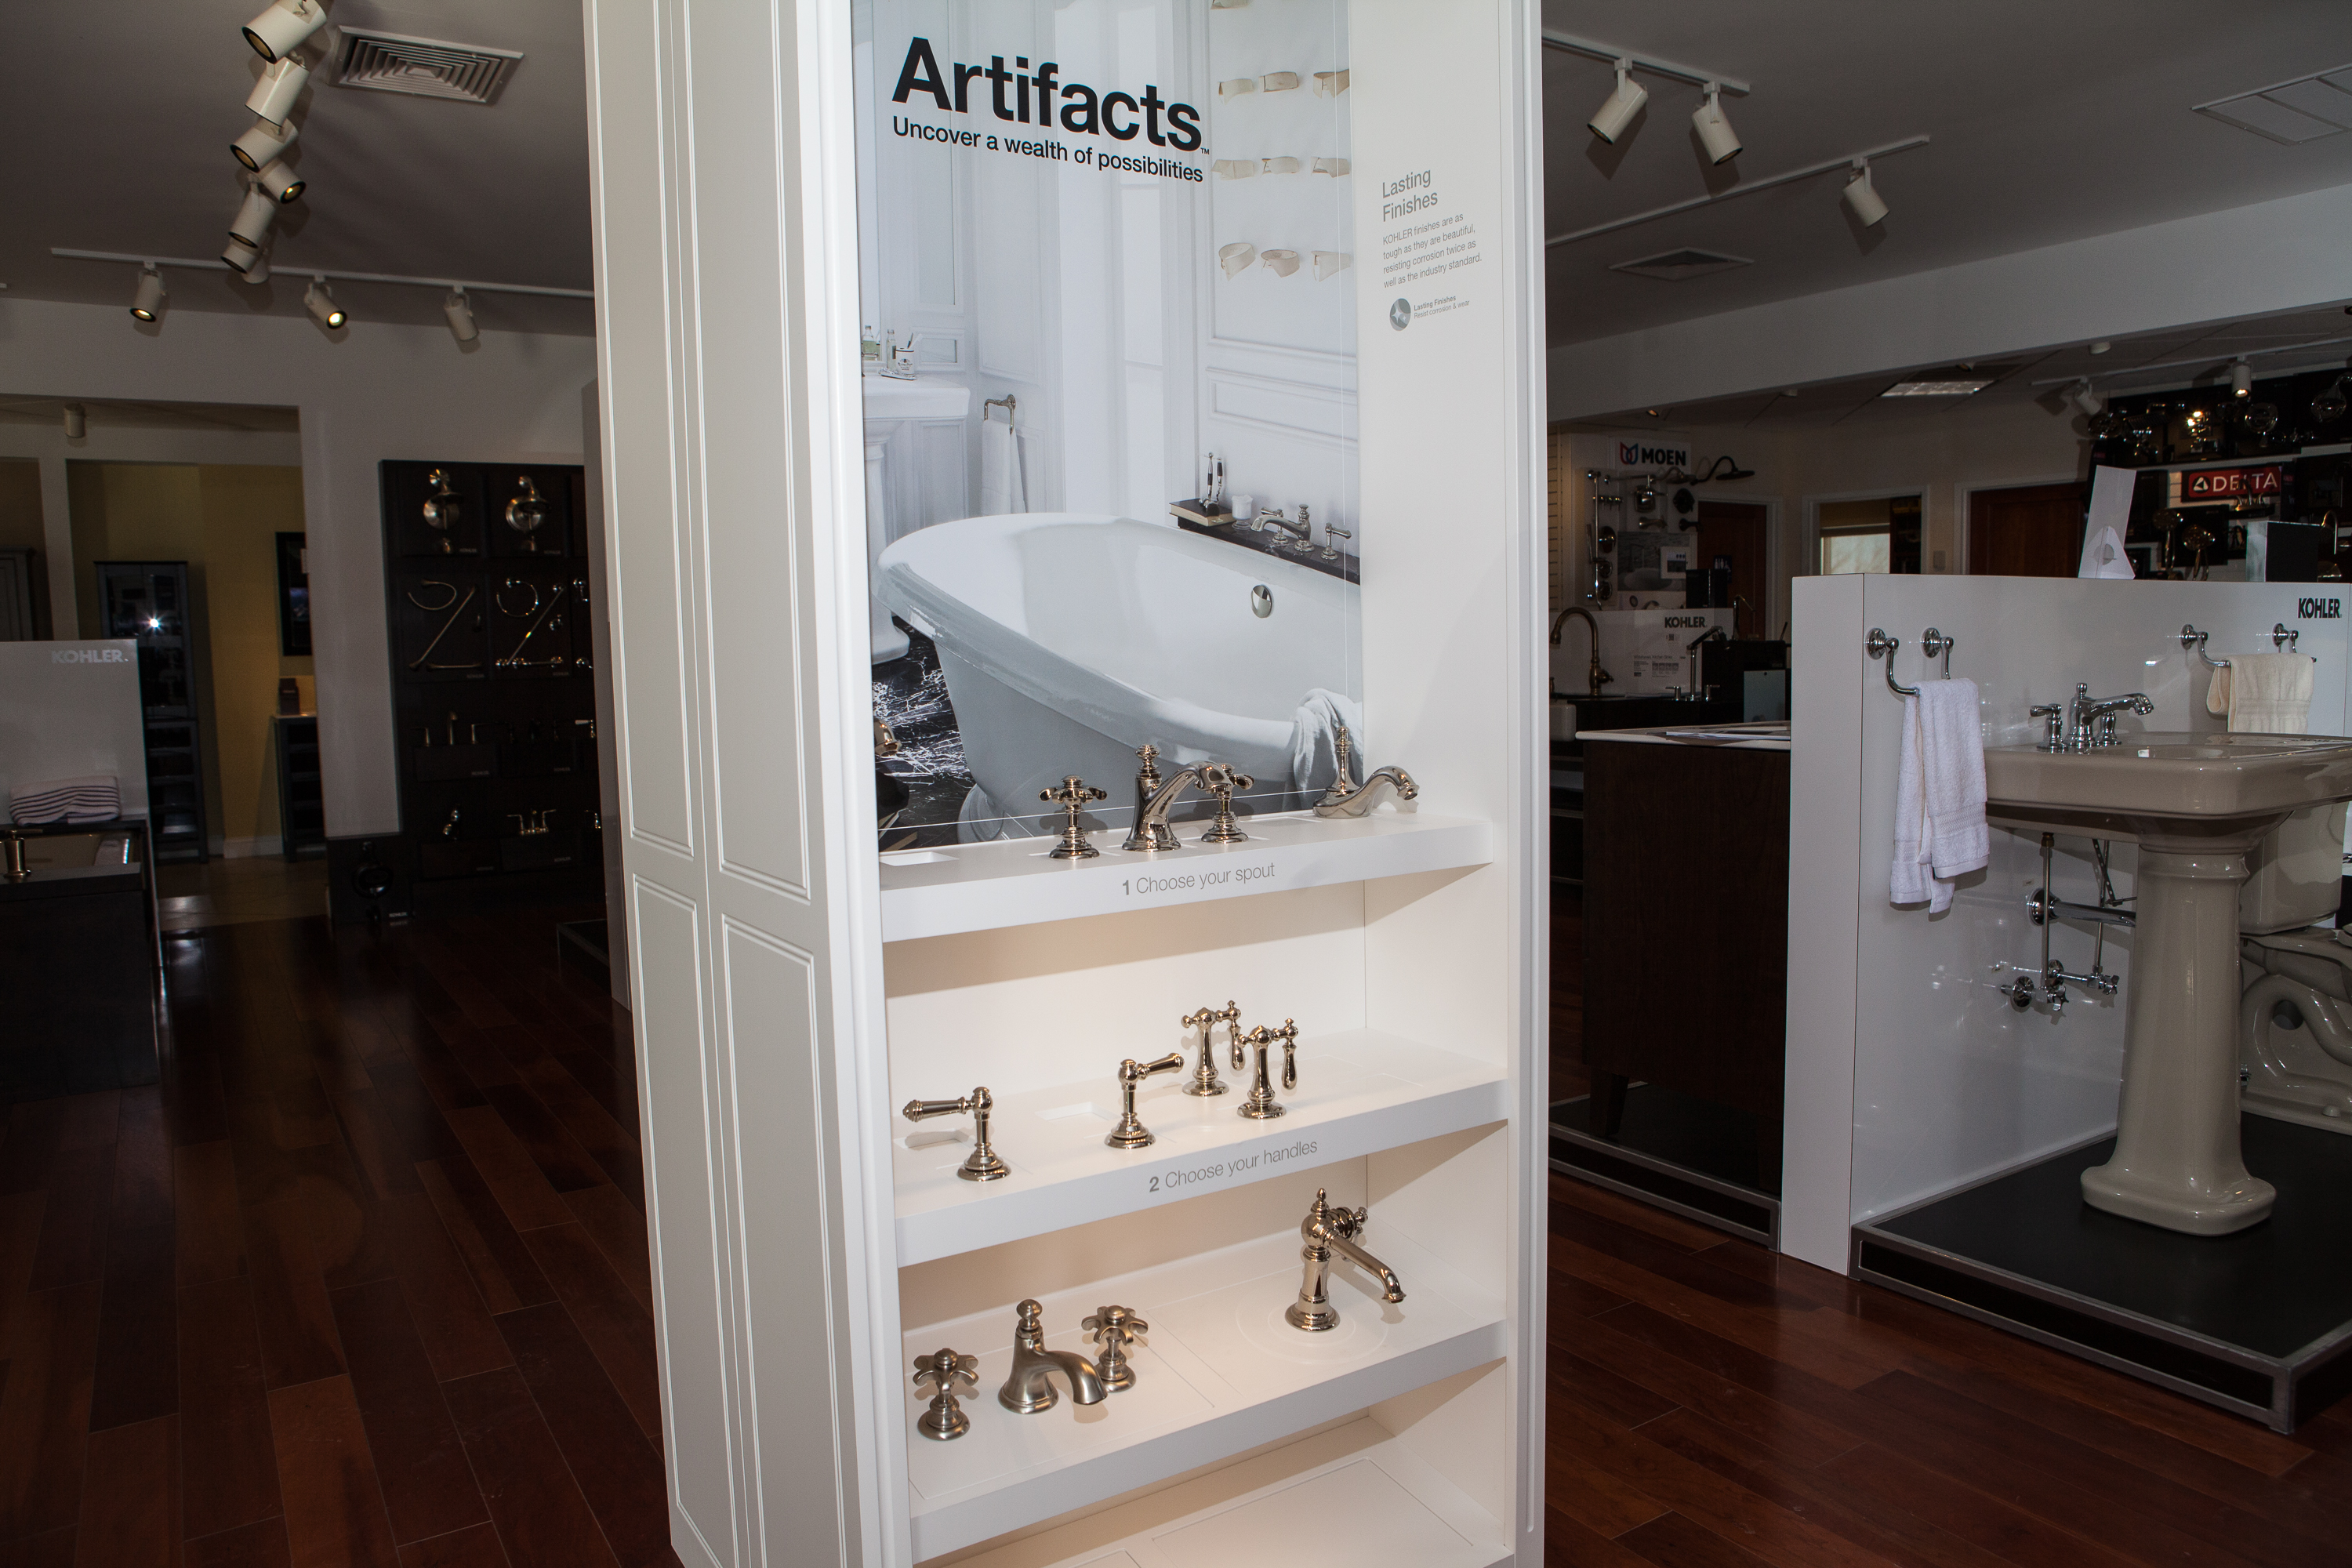 Kohler Artifacts Series | Weinstein Bath & Kitchen Showroom